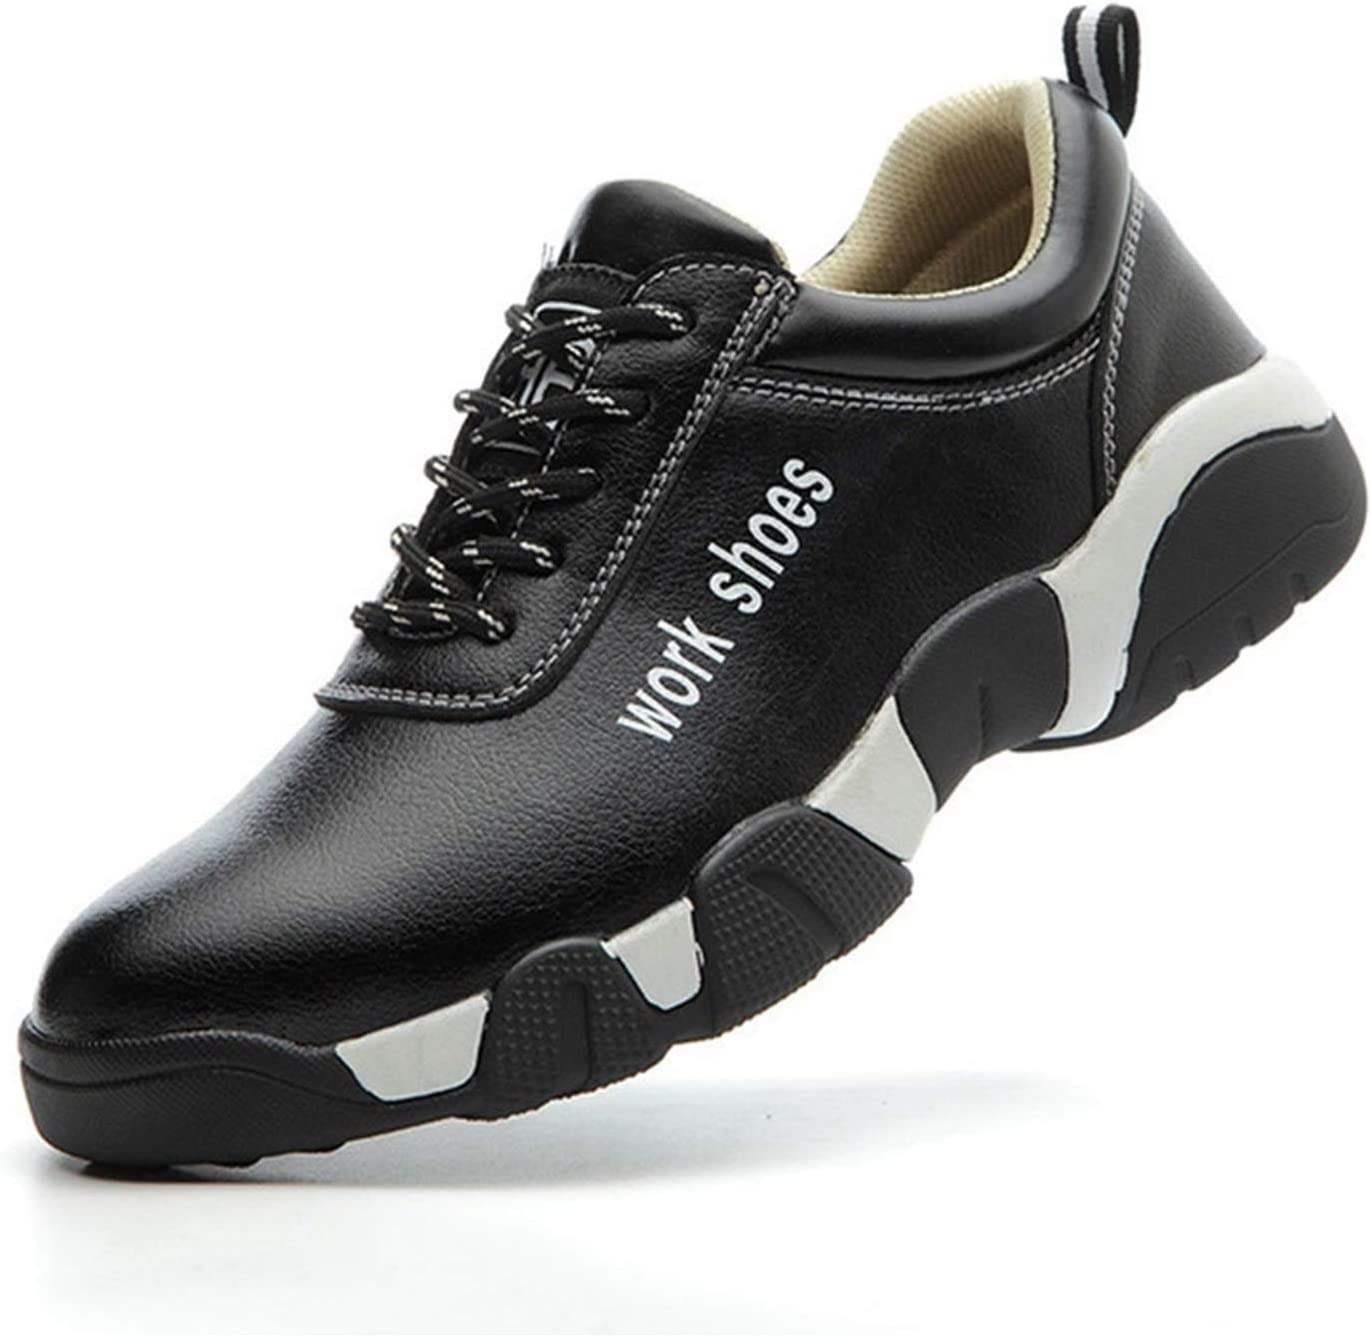 Safety Max 67% OFF Shoes Mens Work Trainers Our shop OFFers the best service Construction Ladies Running Boot